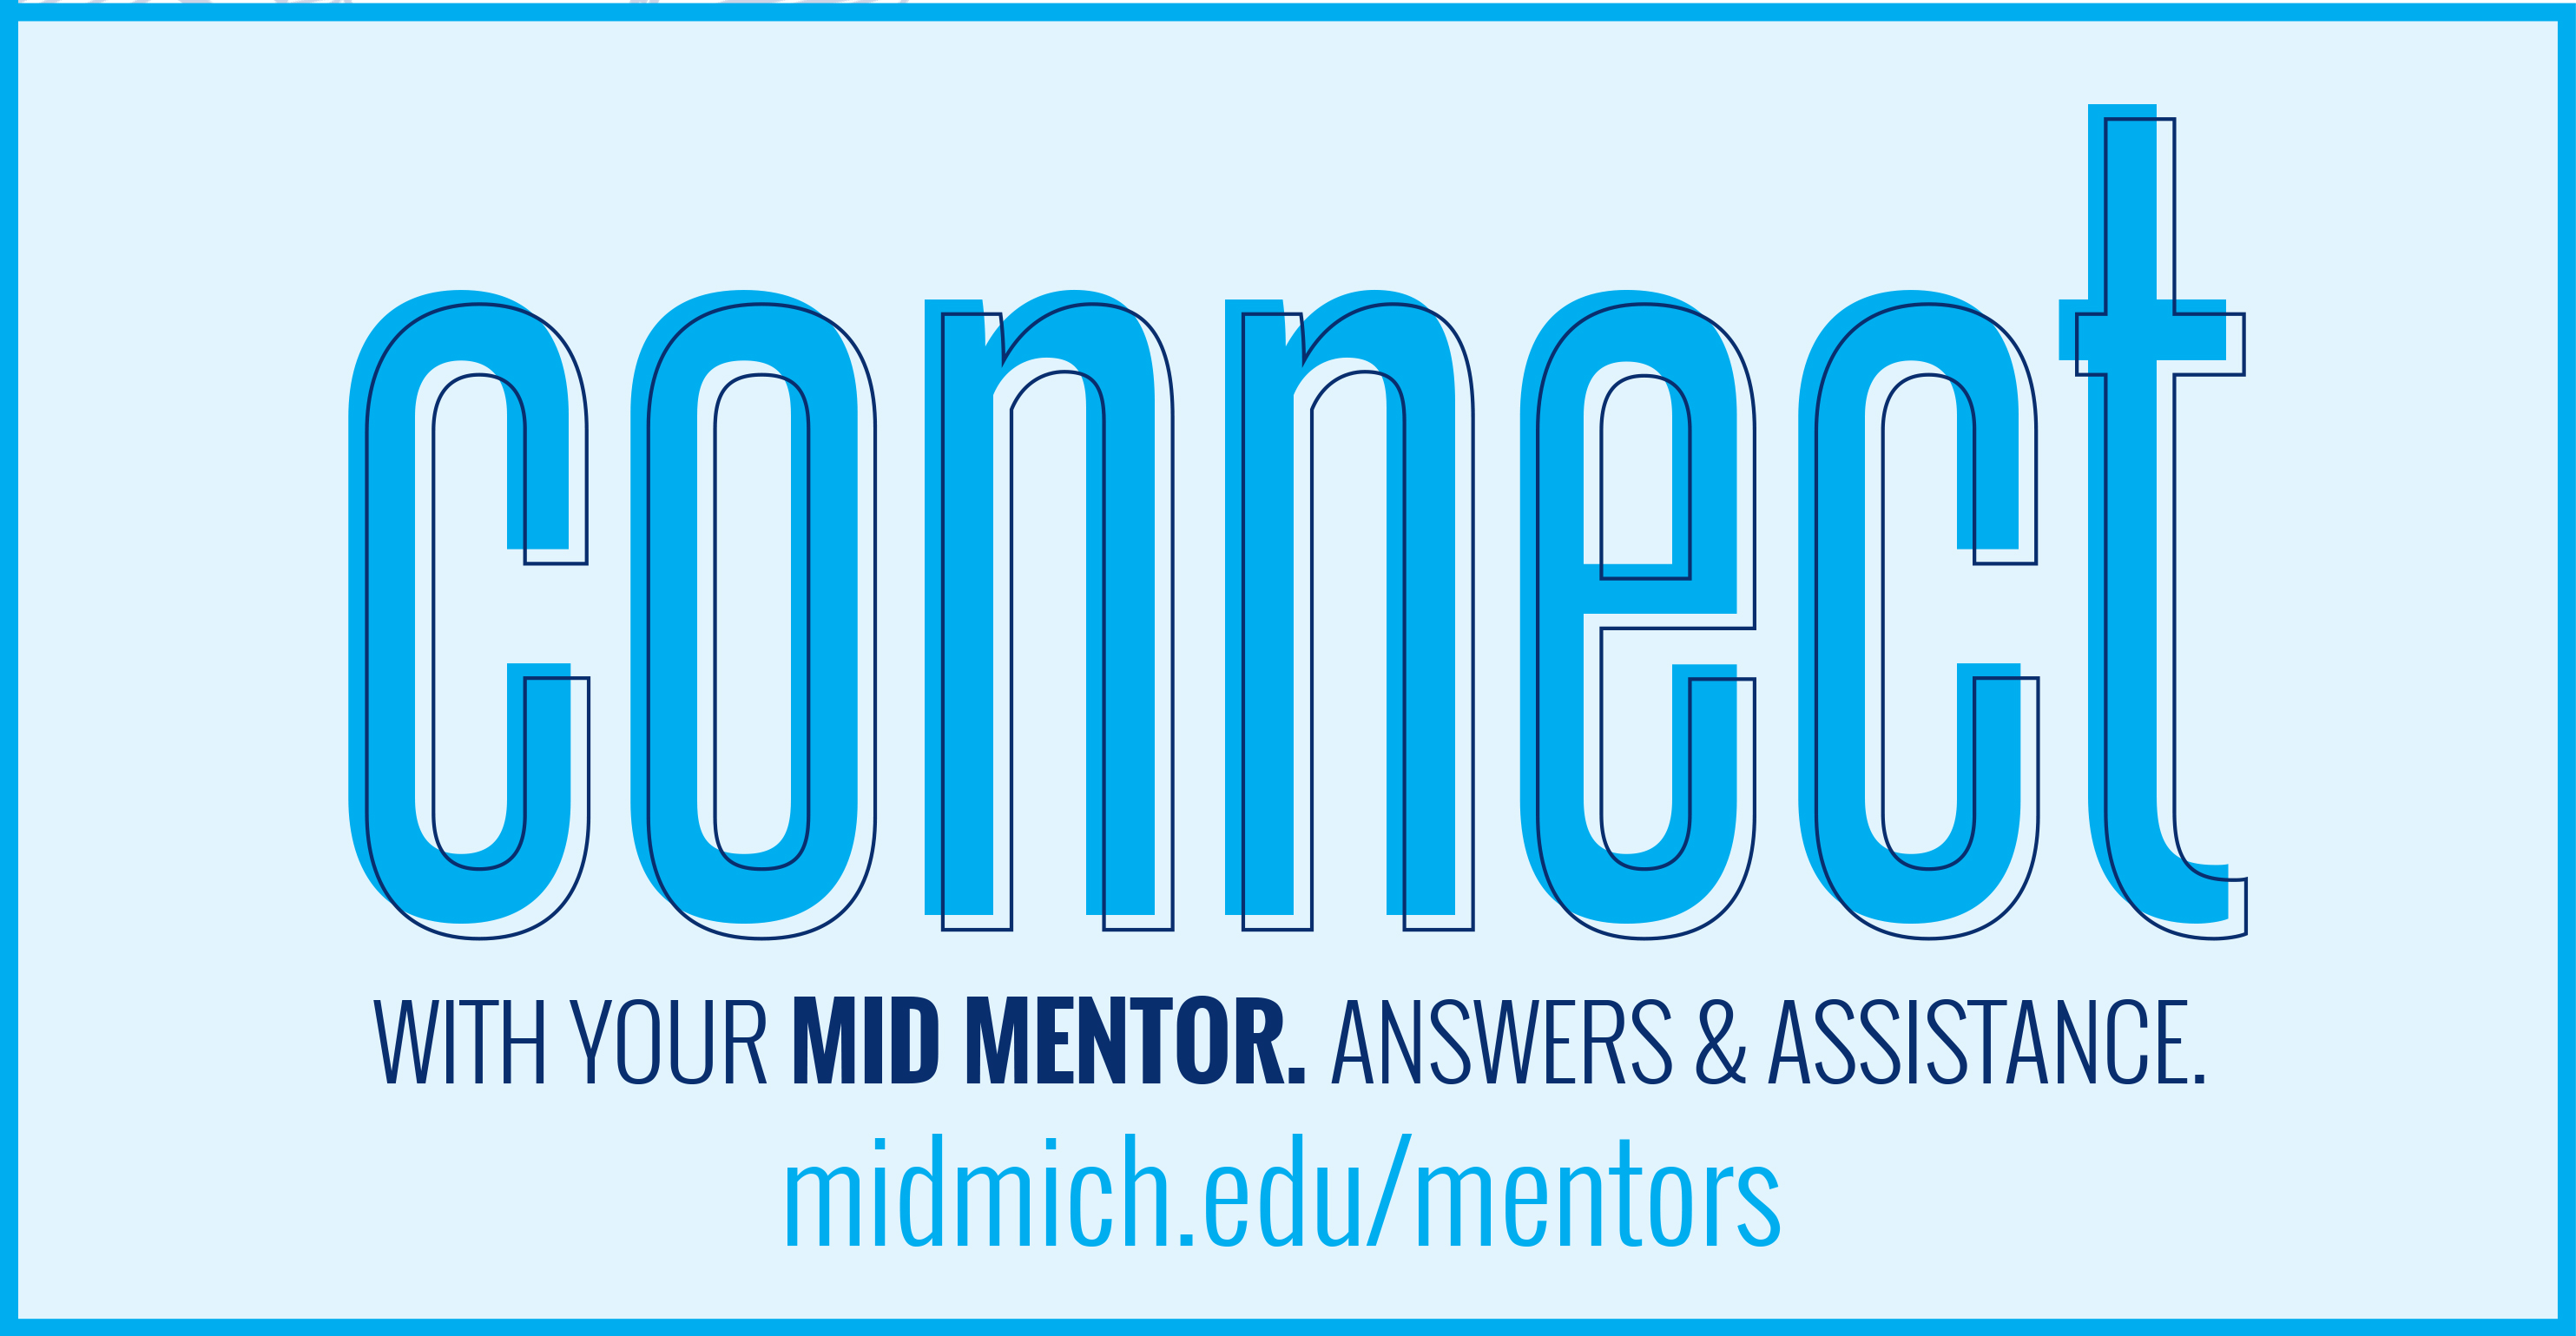 Connect with your Mid Mentor